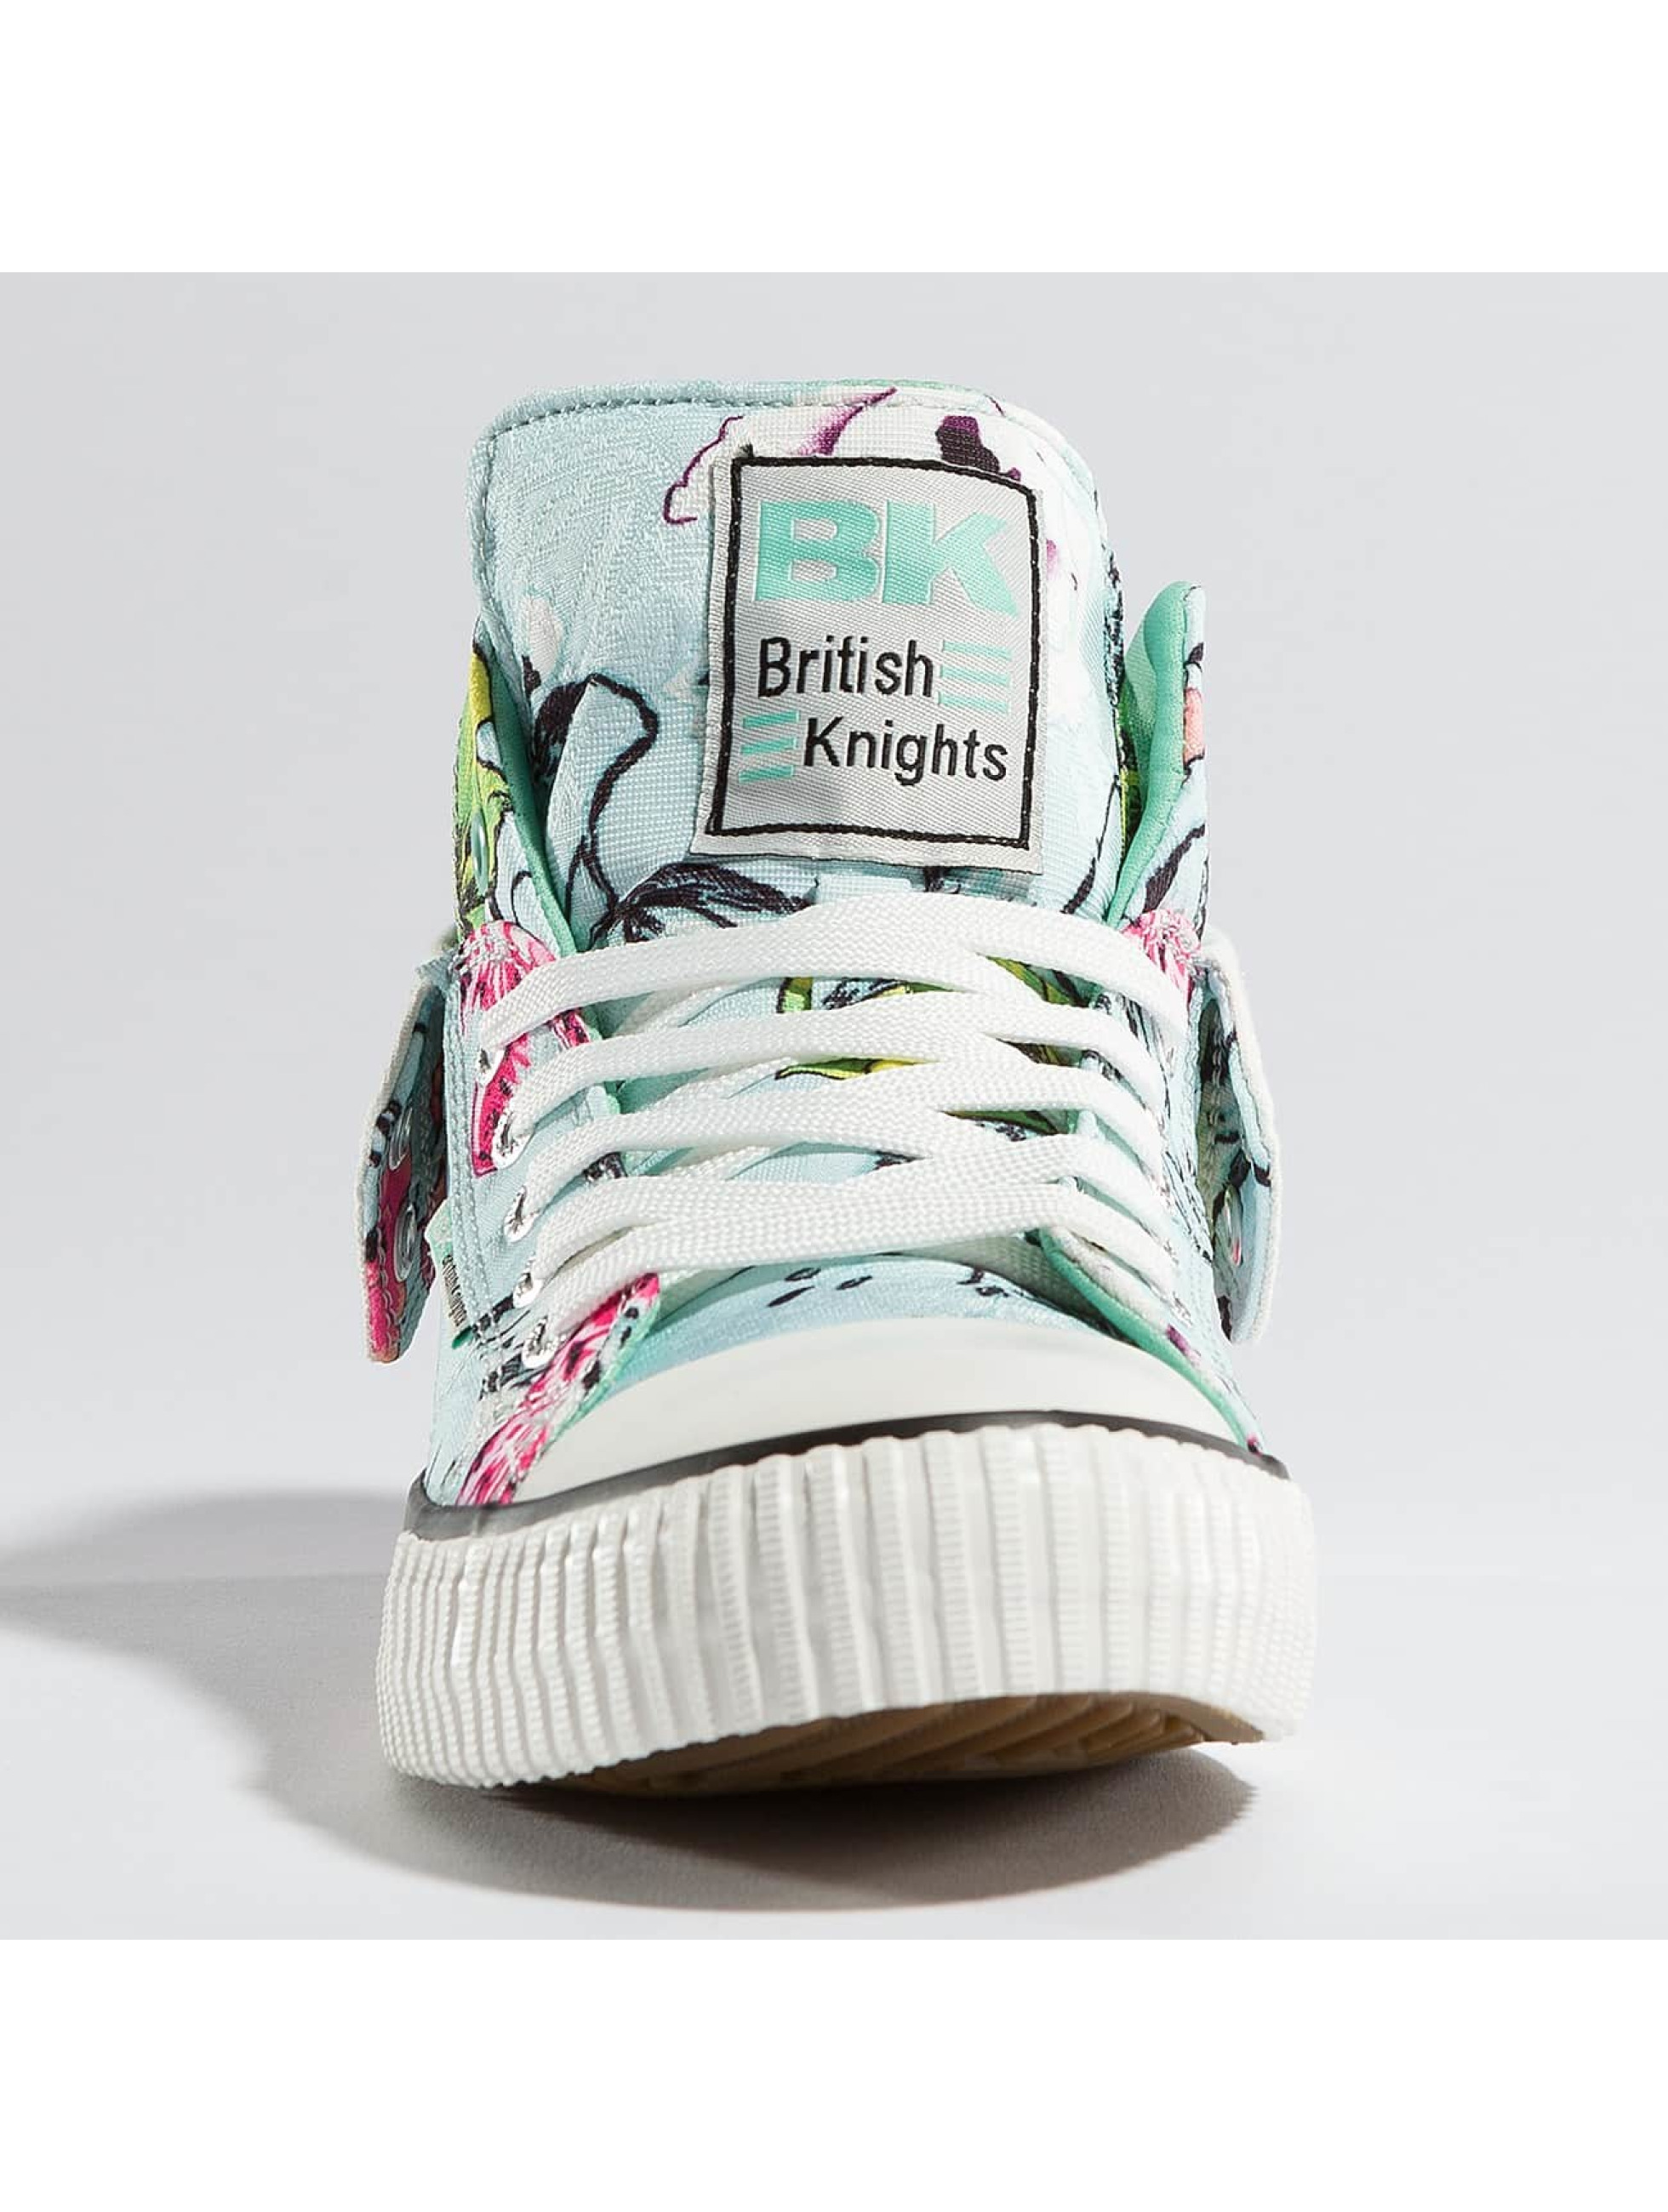 British Knights Sneakers Roco zelená